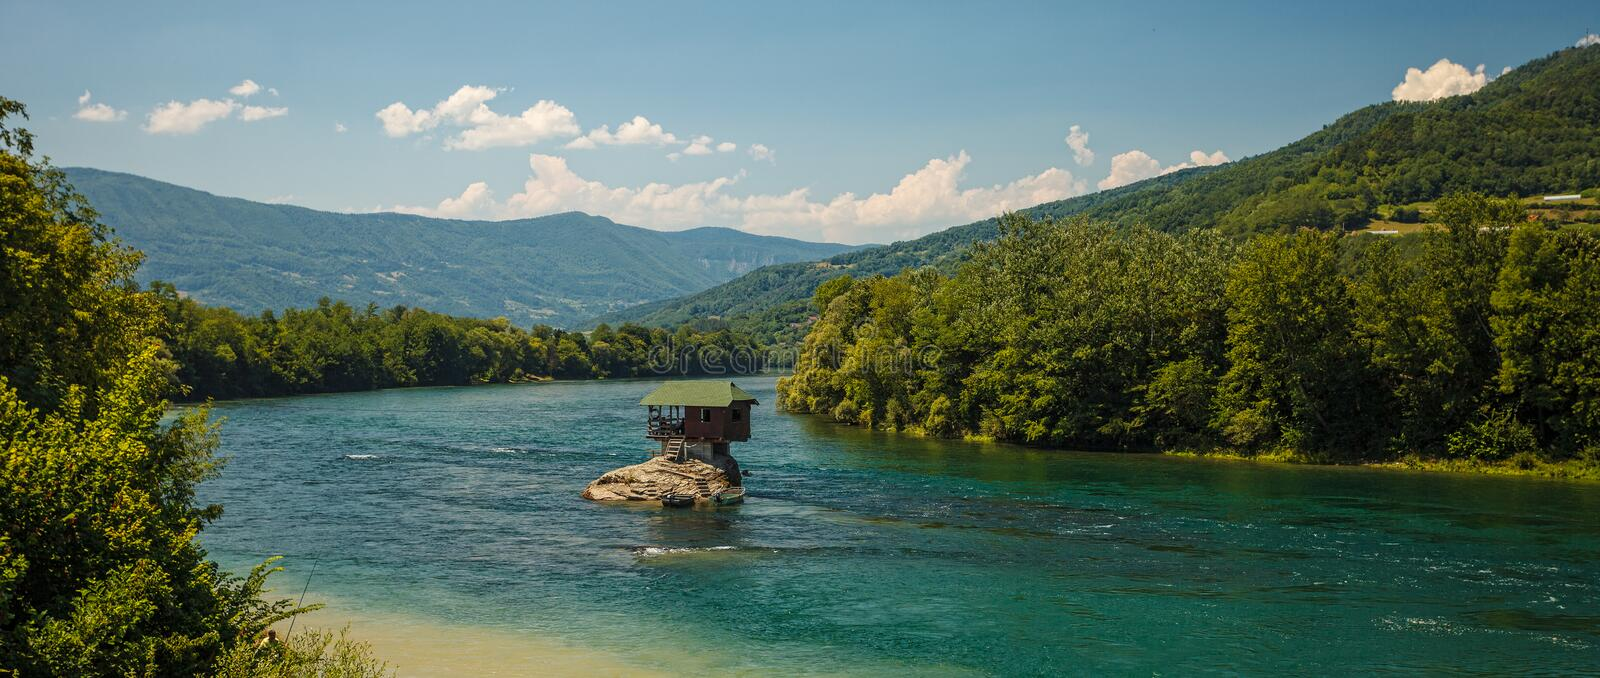 Lonely house. Serene lonely house on the river Drina in Bajina Basta, Serbia royalty free stock images